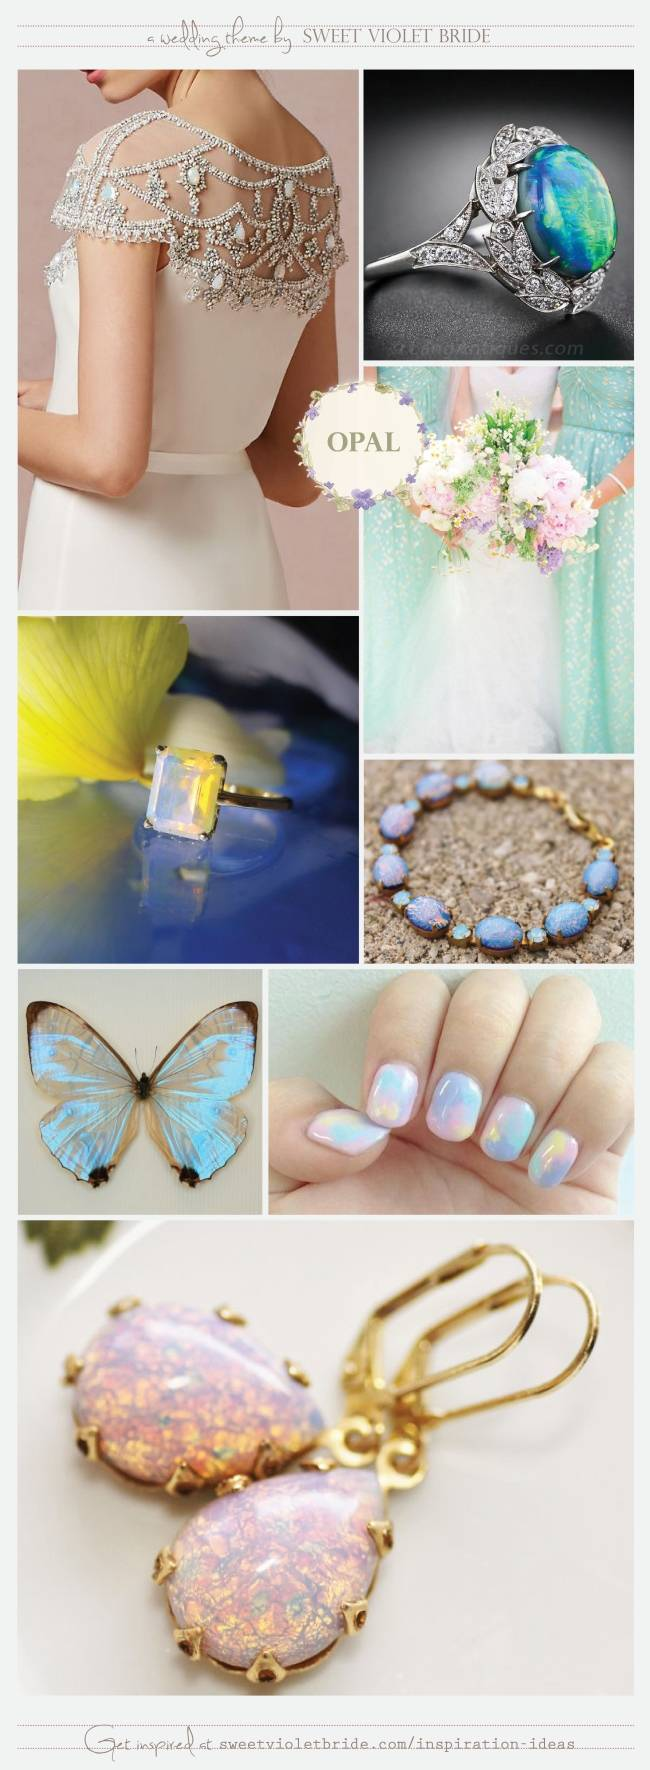 Wedding Inspiration Board #31: Opal